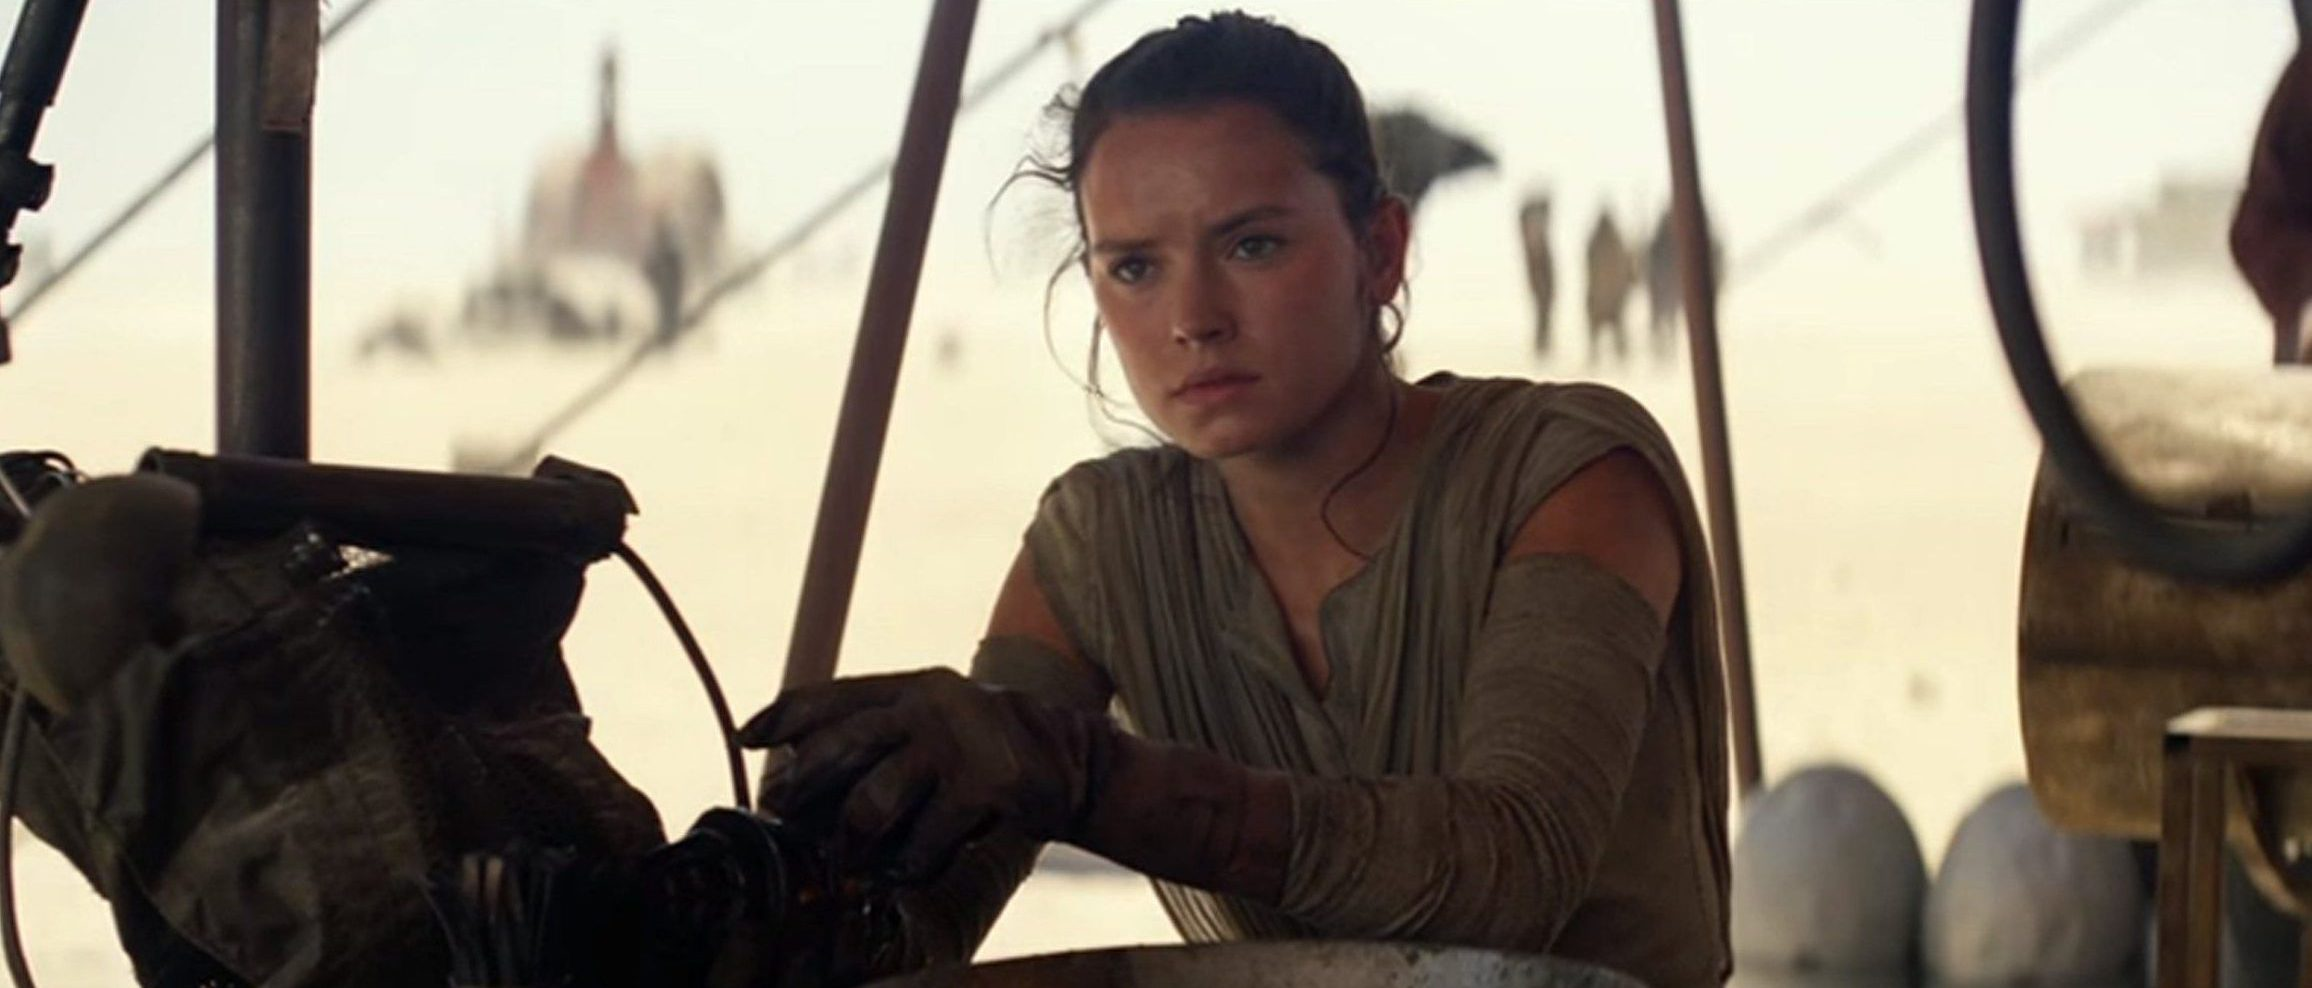 Film: Star Wars: Episode VII - The Force Awakens (2015), with Daisy Ridley as Rey.